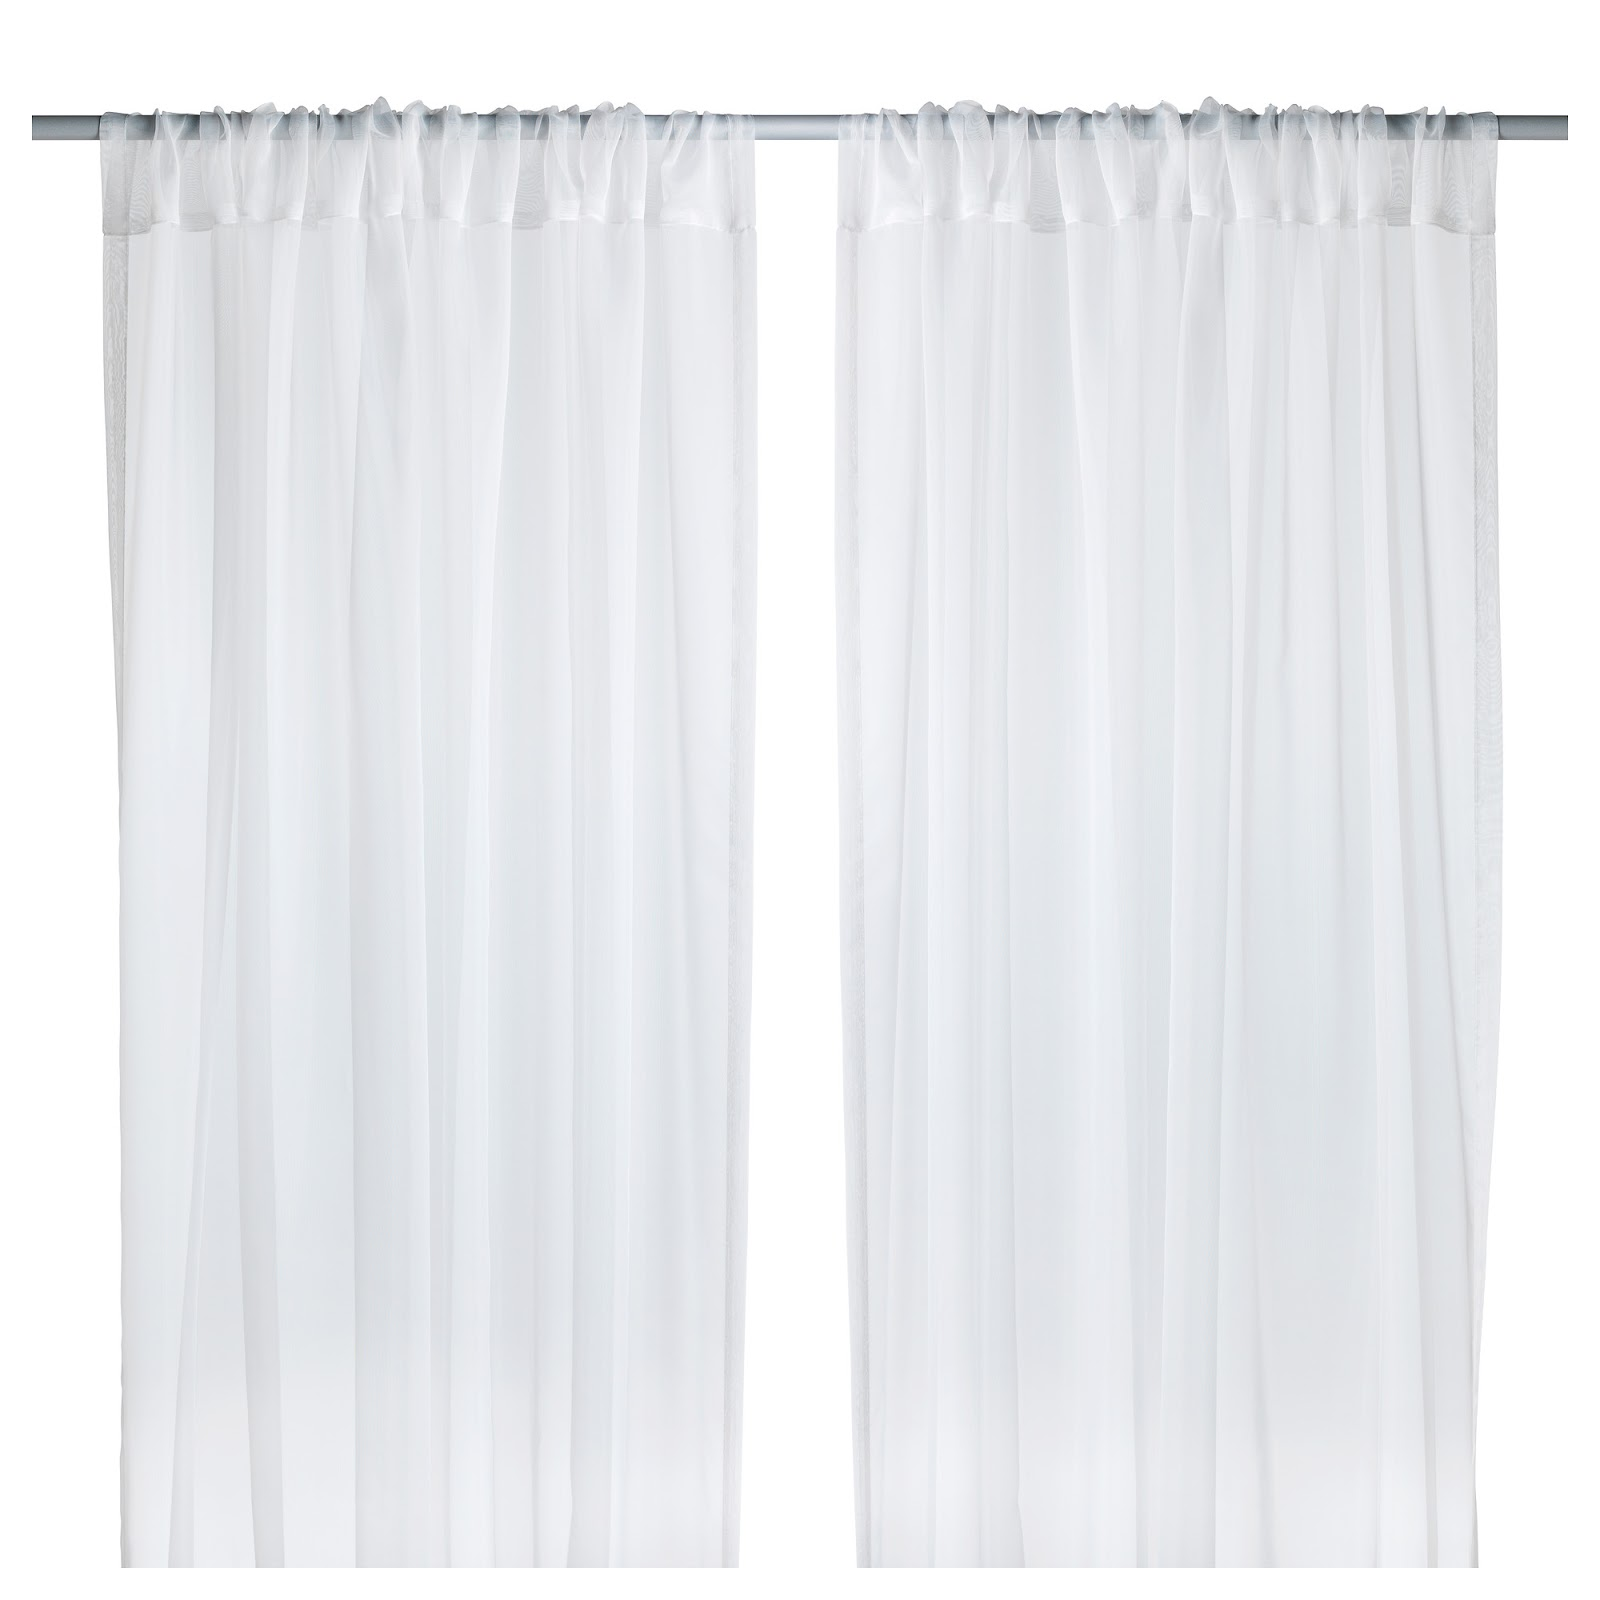 Pleat Top Curtains Pleated Curtain Hooks Diy For Traverse Rods